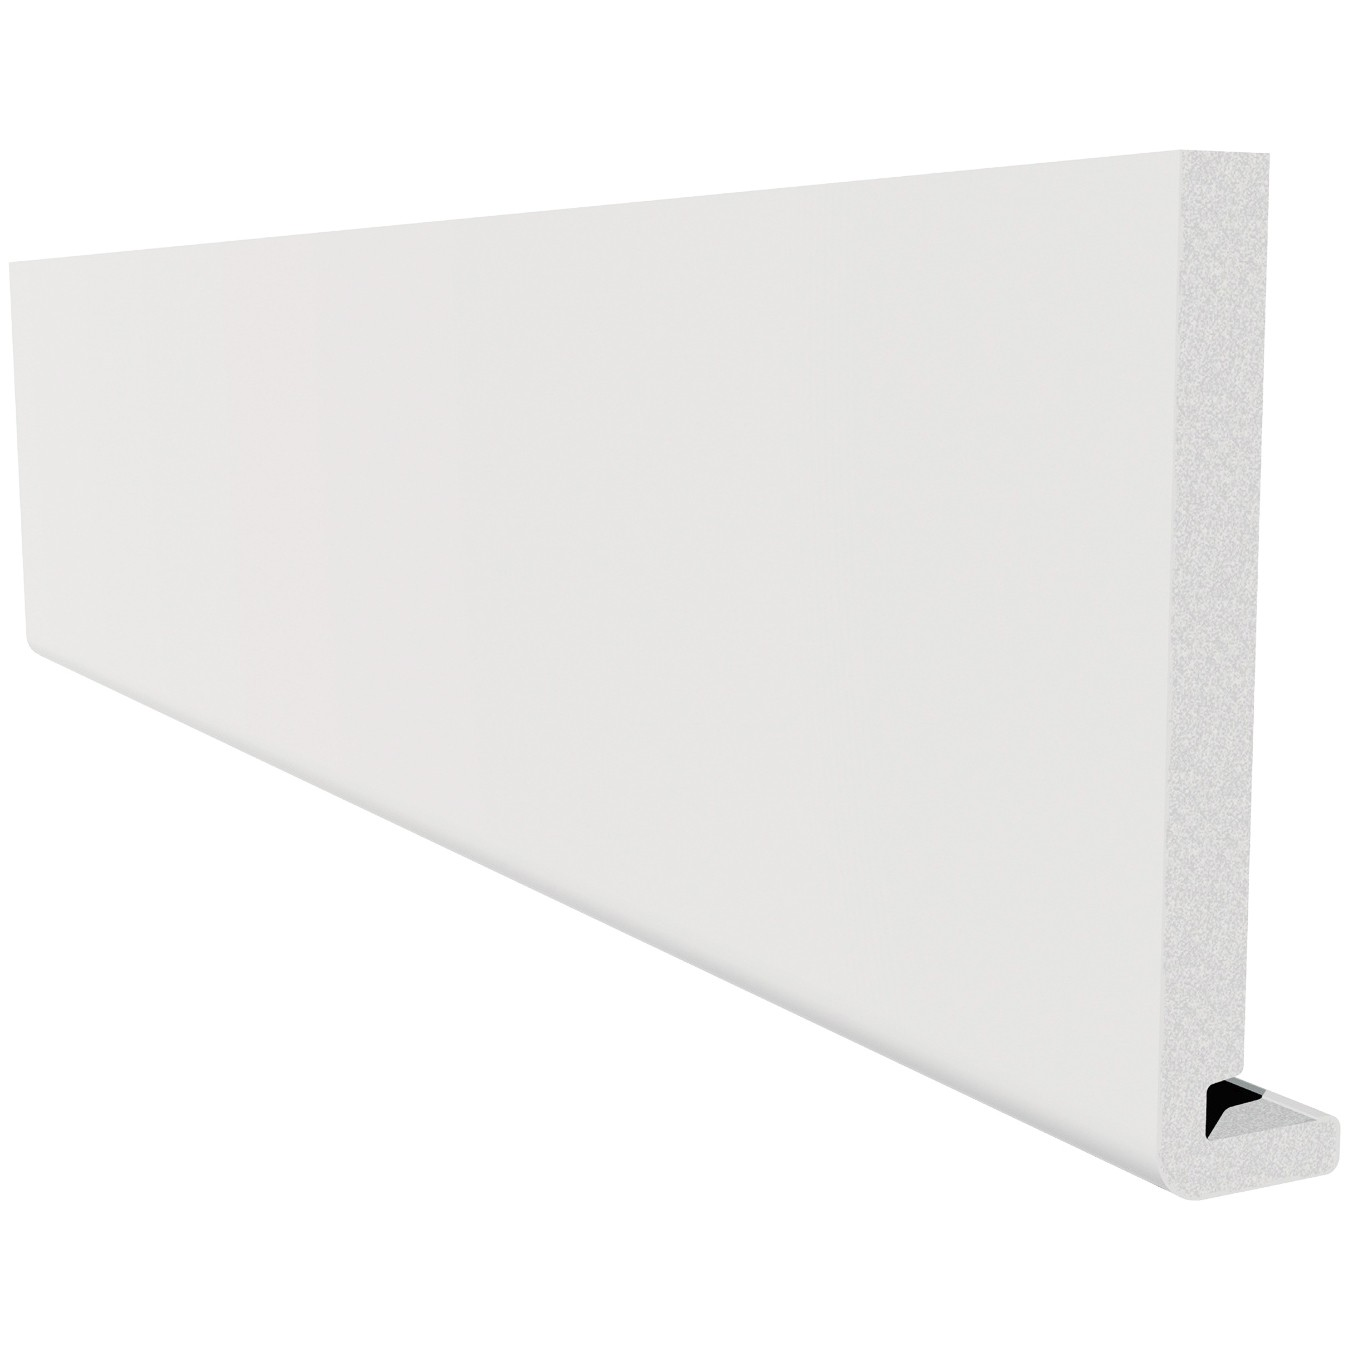 Freefoam Magnum Square Leg 18mm Fascia Board - White, 225mm, 5 metre